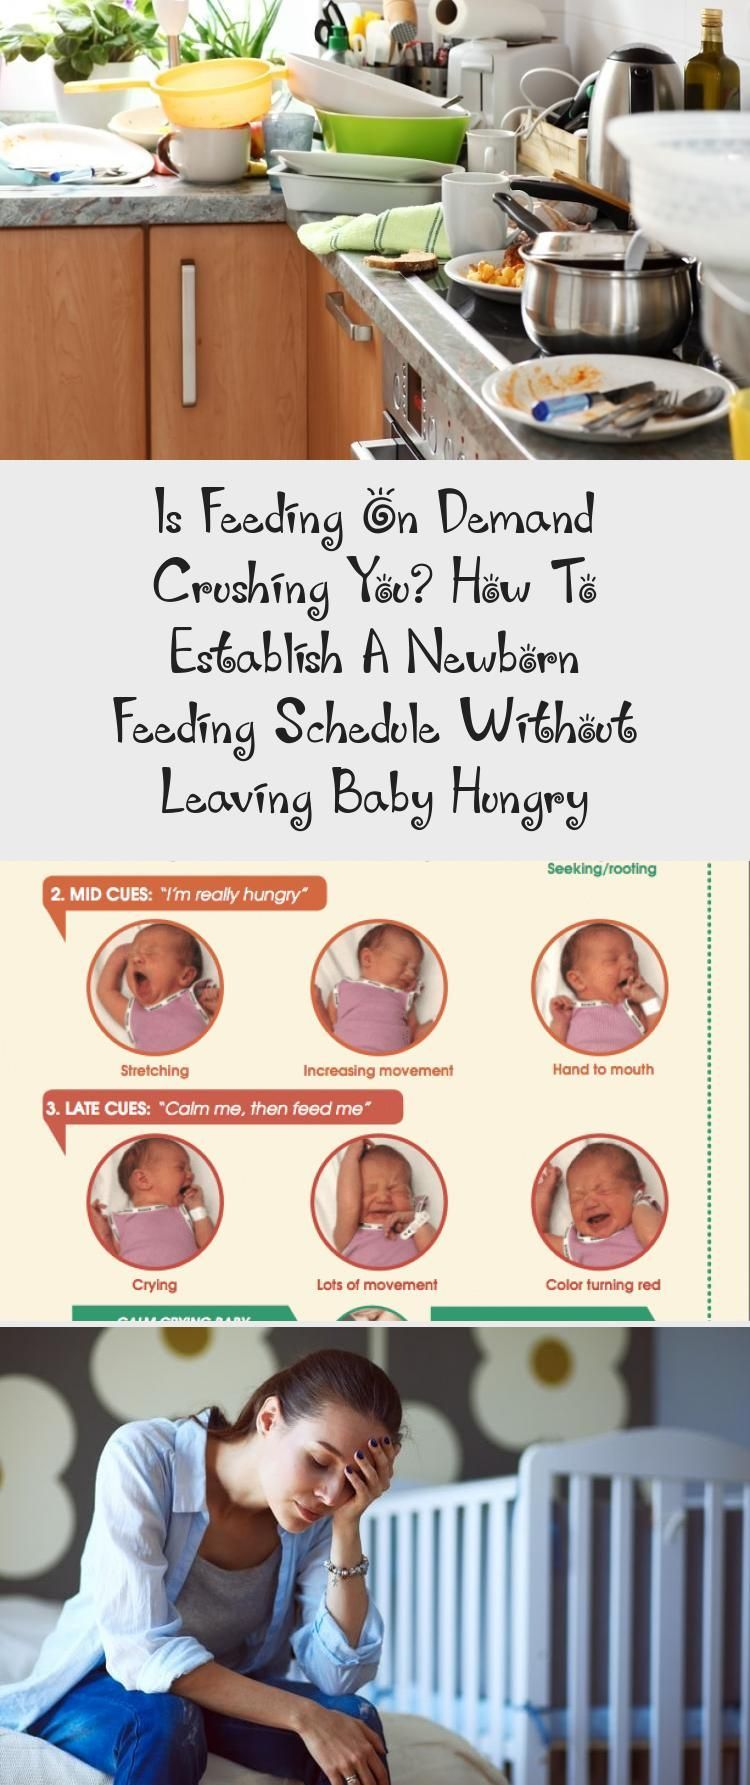 Is Feeding On Demand crushing you? How to establish a neonatal feeding program without leaving the b...